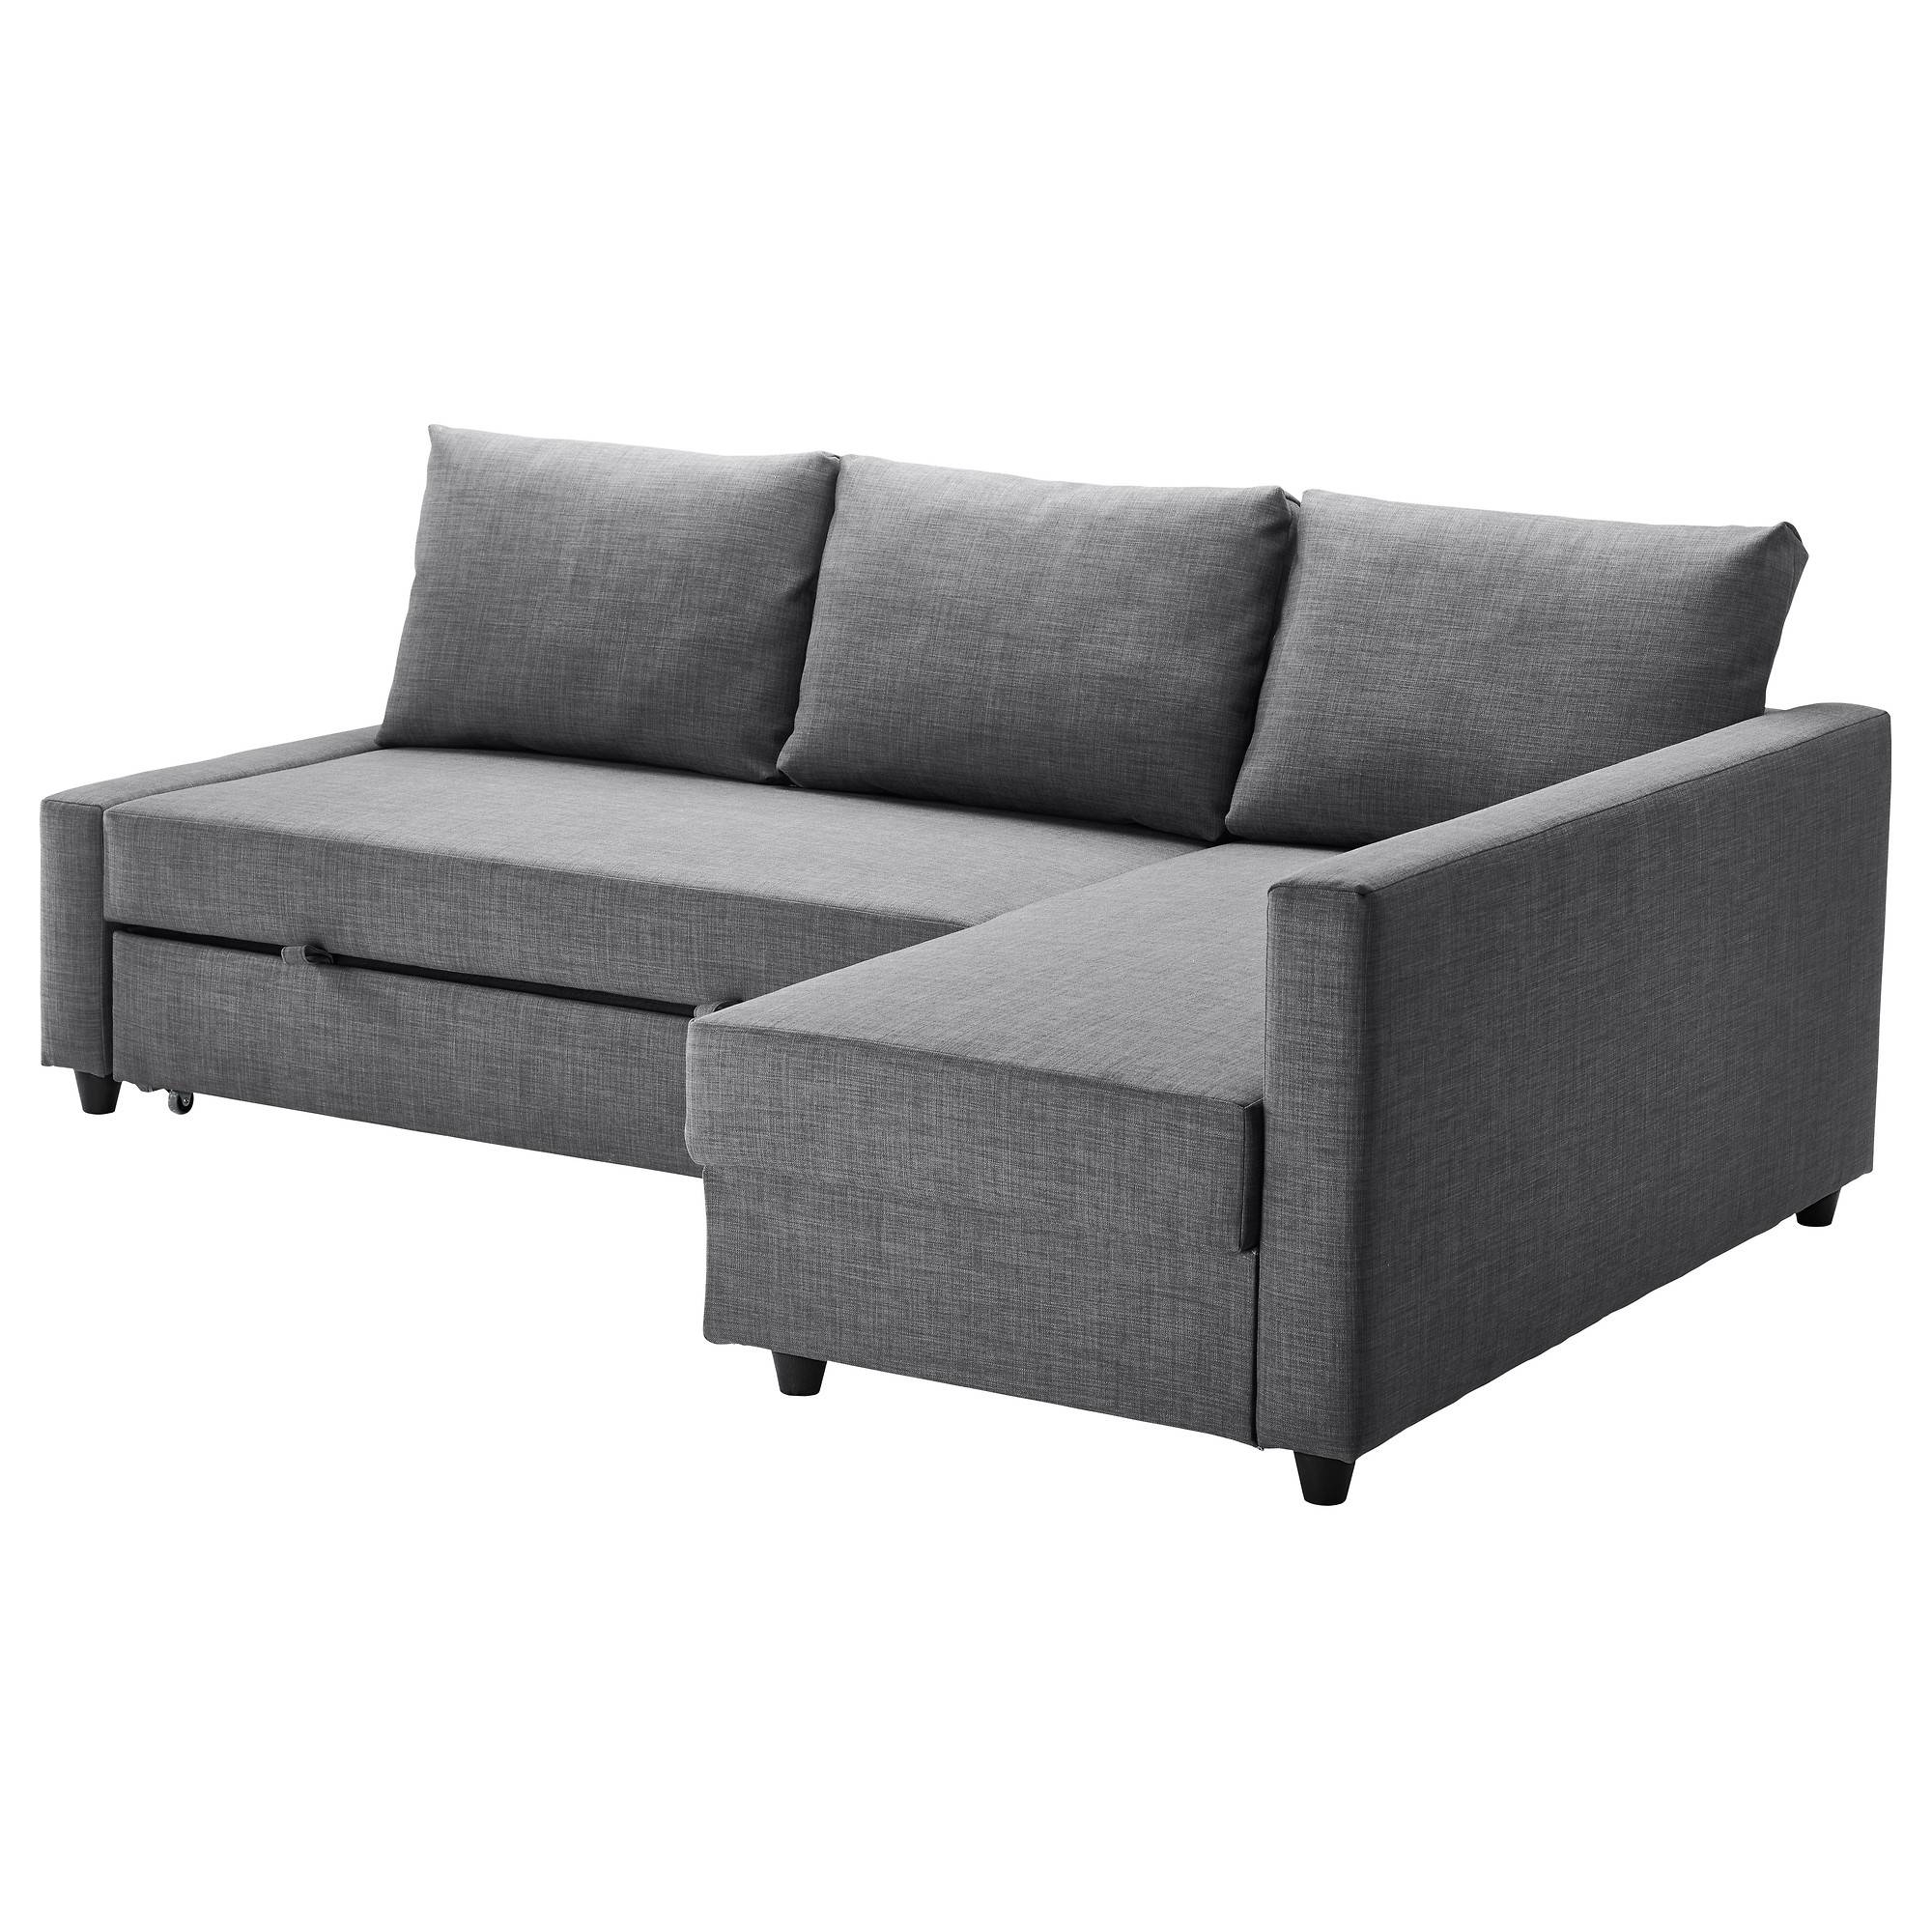 Furniture: Ikea Sleeper Sofa | Sofa Sleepers Ikea | Lazy Boy with regard to Ikea Sleeper Sofa Sectional (Image 10 of 25)